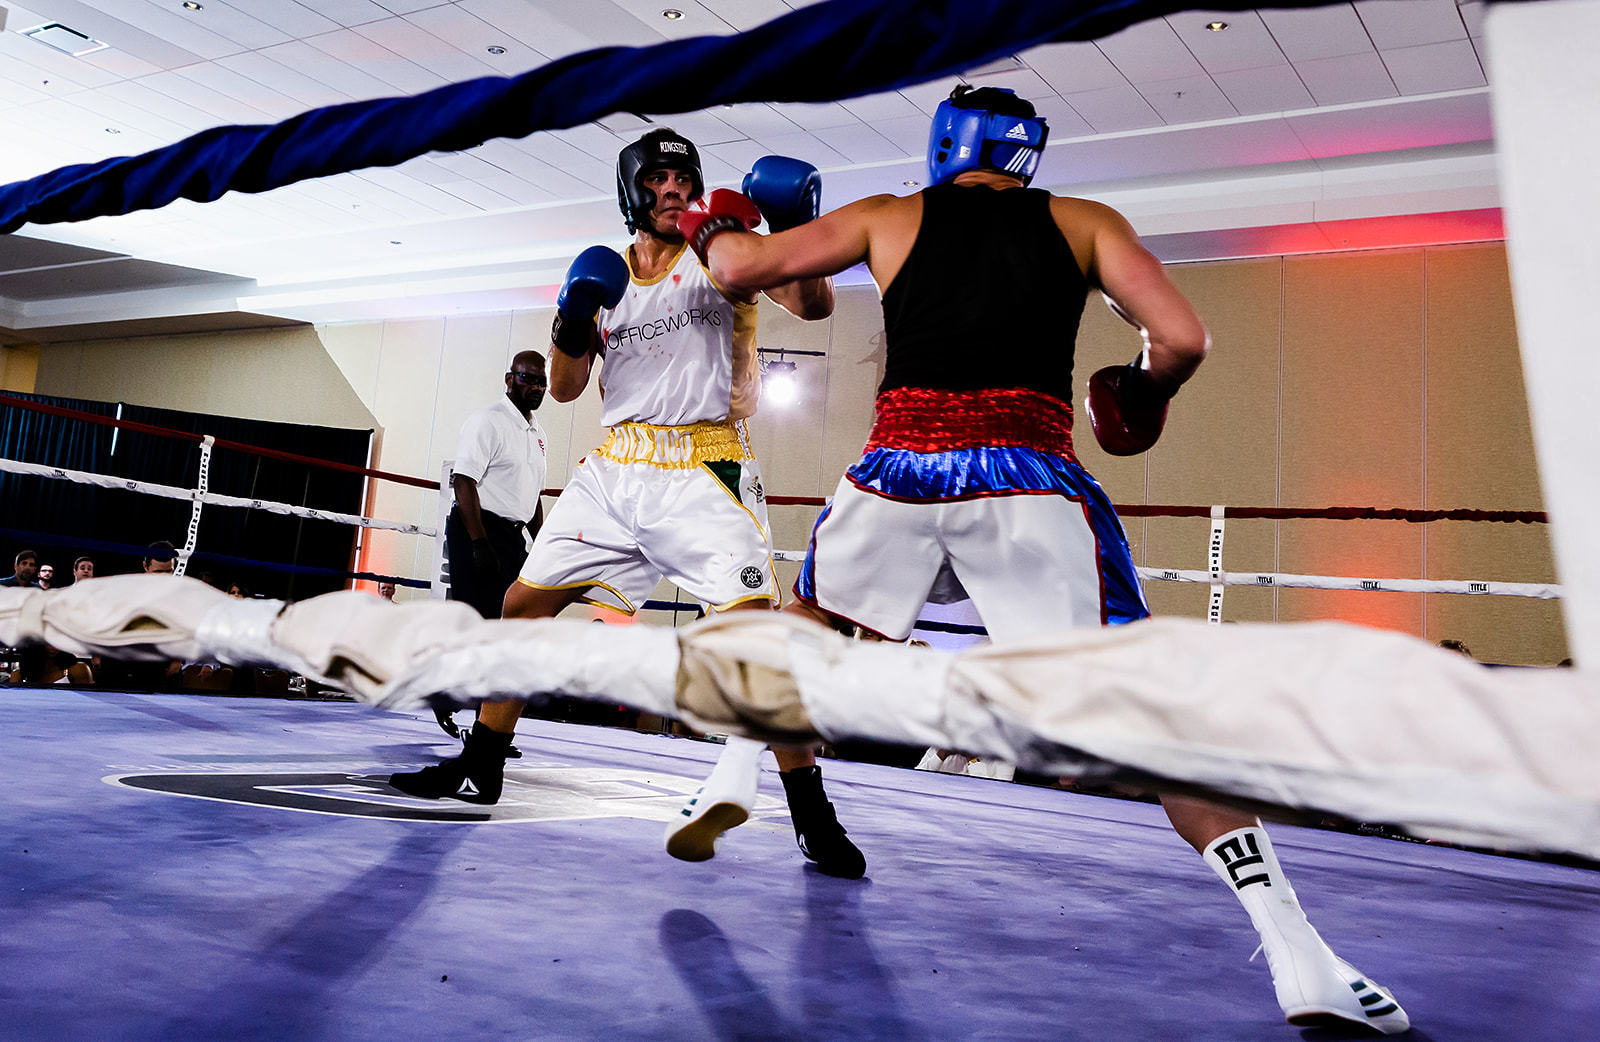 Scott O'Neil throws punch to opponent during charity boxing match